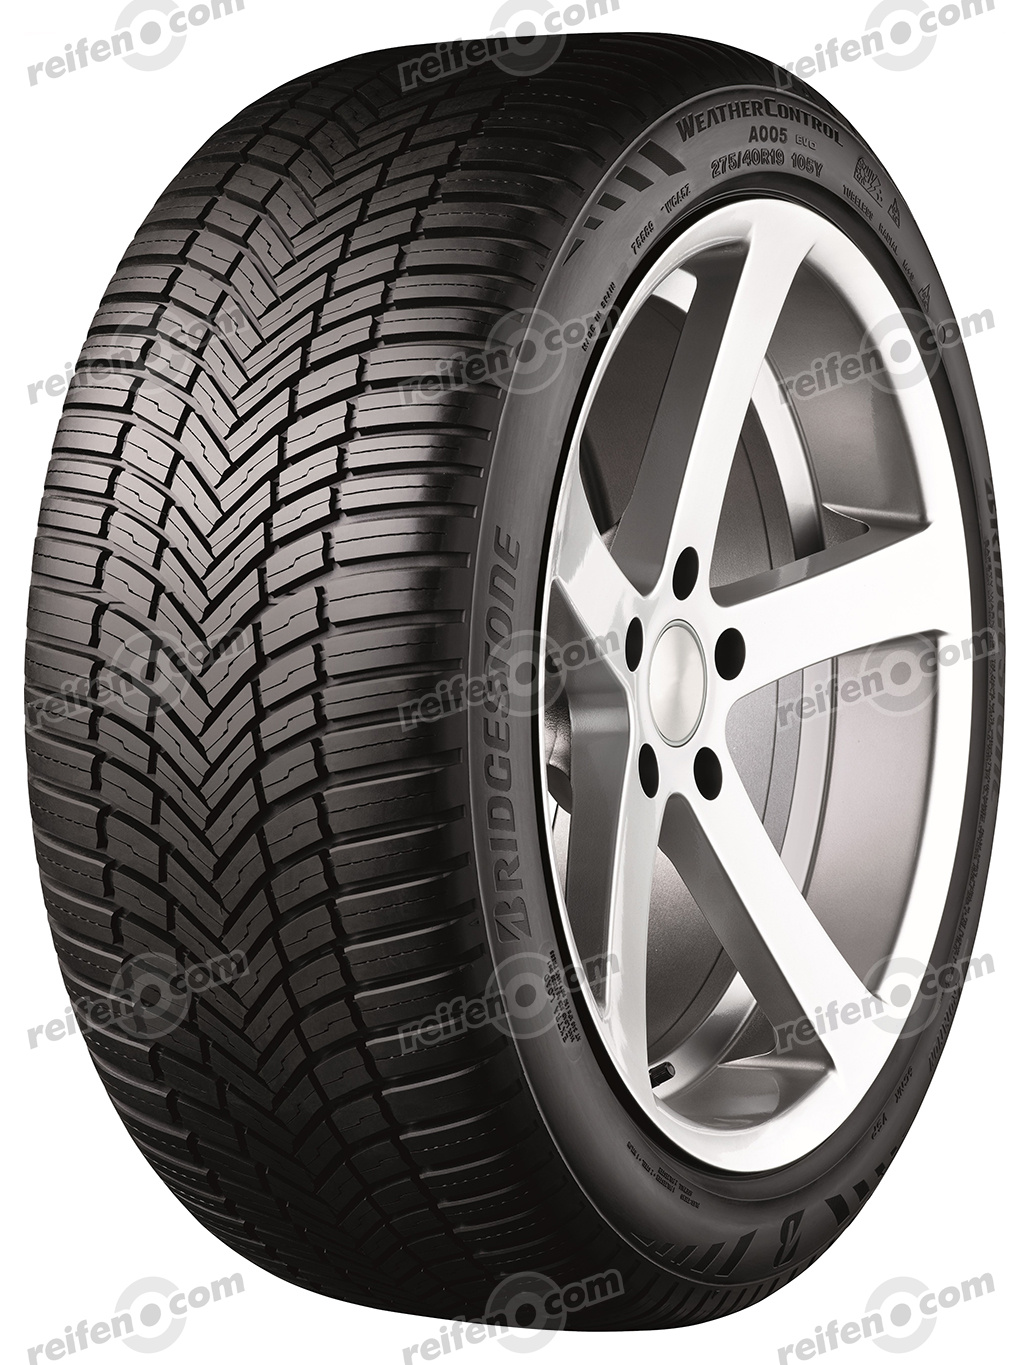 225/40 R18 92Y A005 Weather Control EVO XL FSL M+S  A005 Weather Control EVO XL FSL M+S